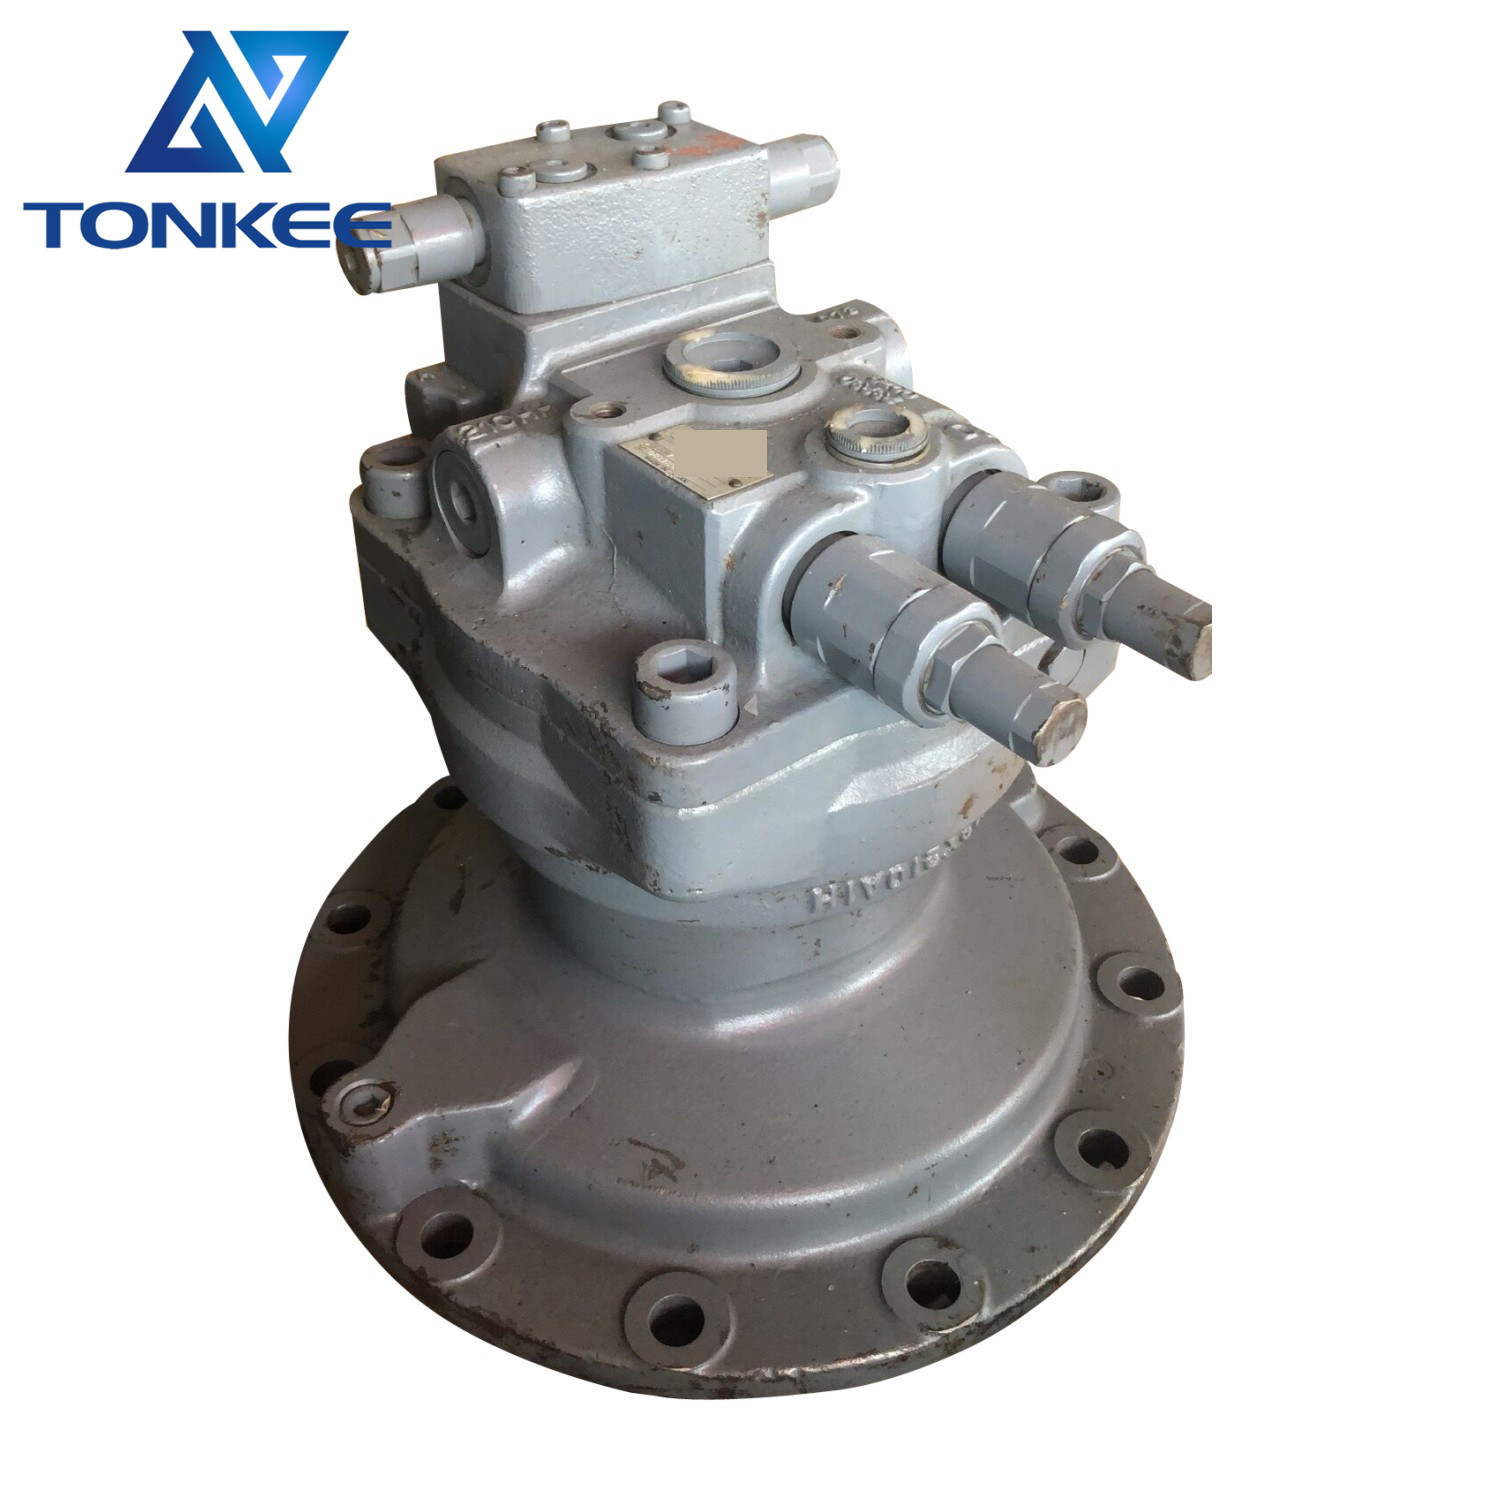 332K4684 KSC0196 KPM M2X210CHB-10A hydraulic swing motor JS330 excavator swing hydraulic engine suitable for JCB